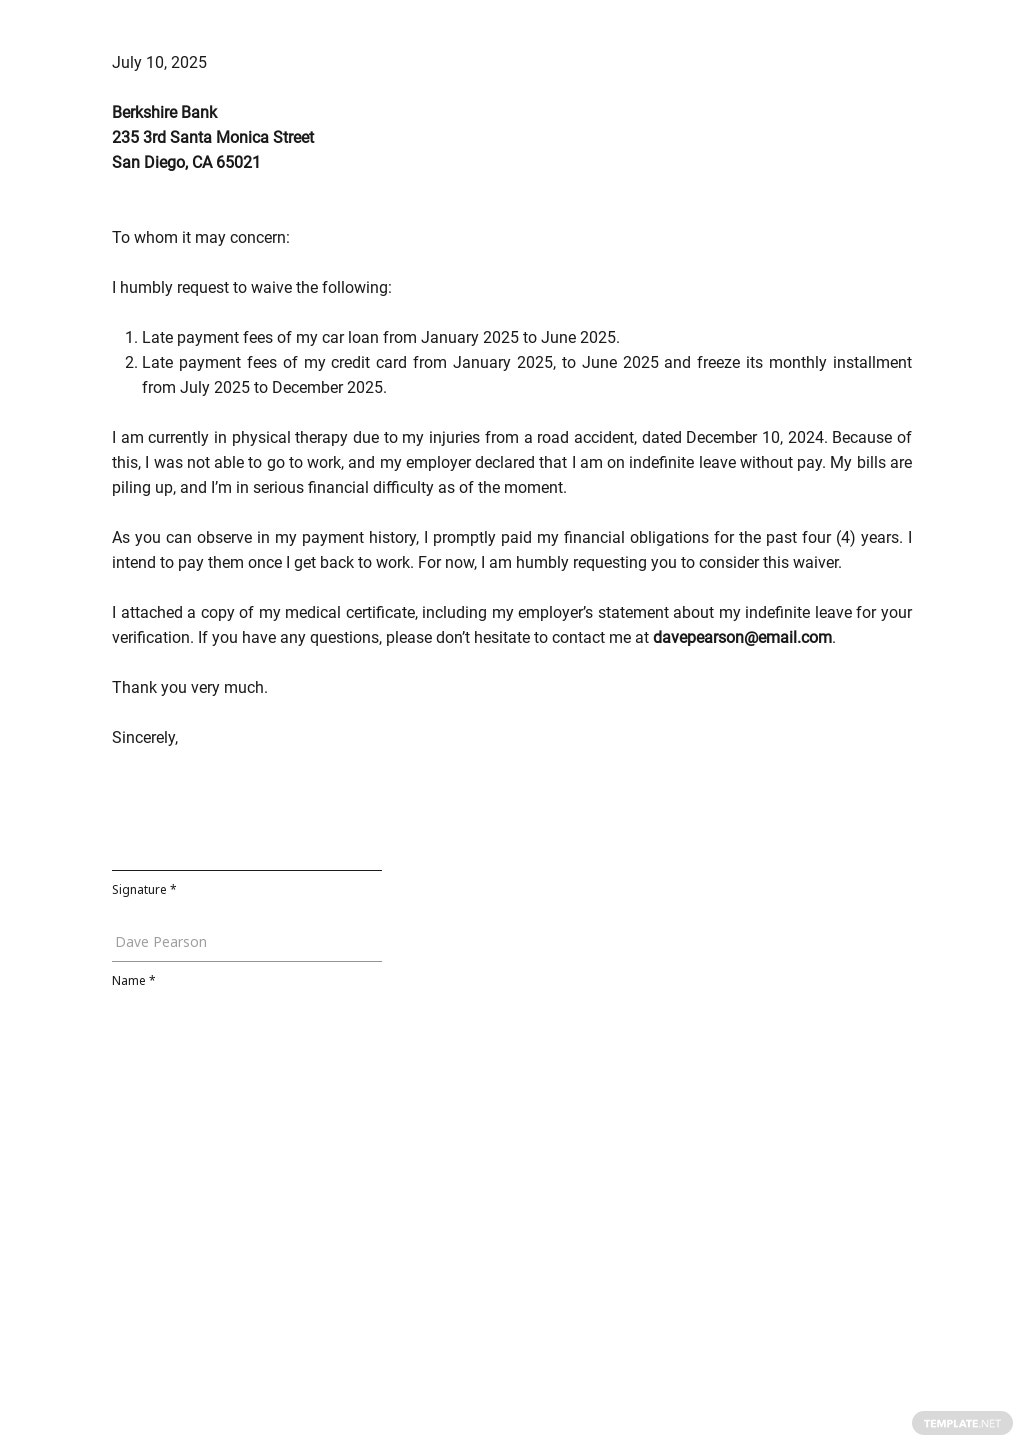 Sample Letter of Waiver Template.jpe